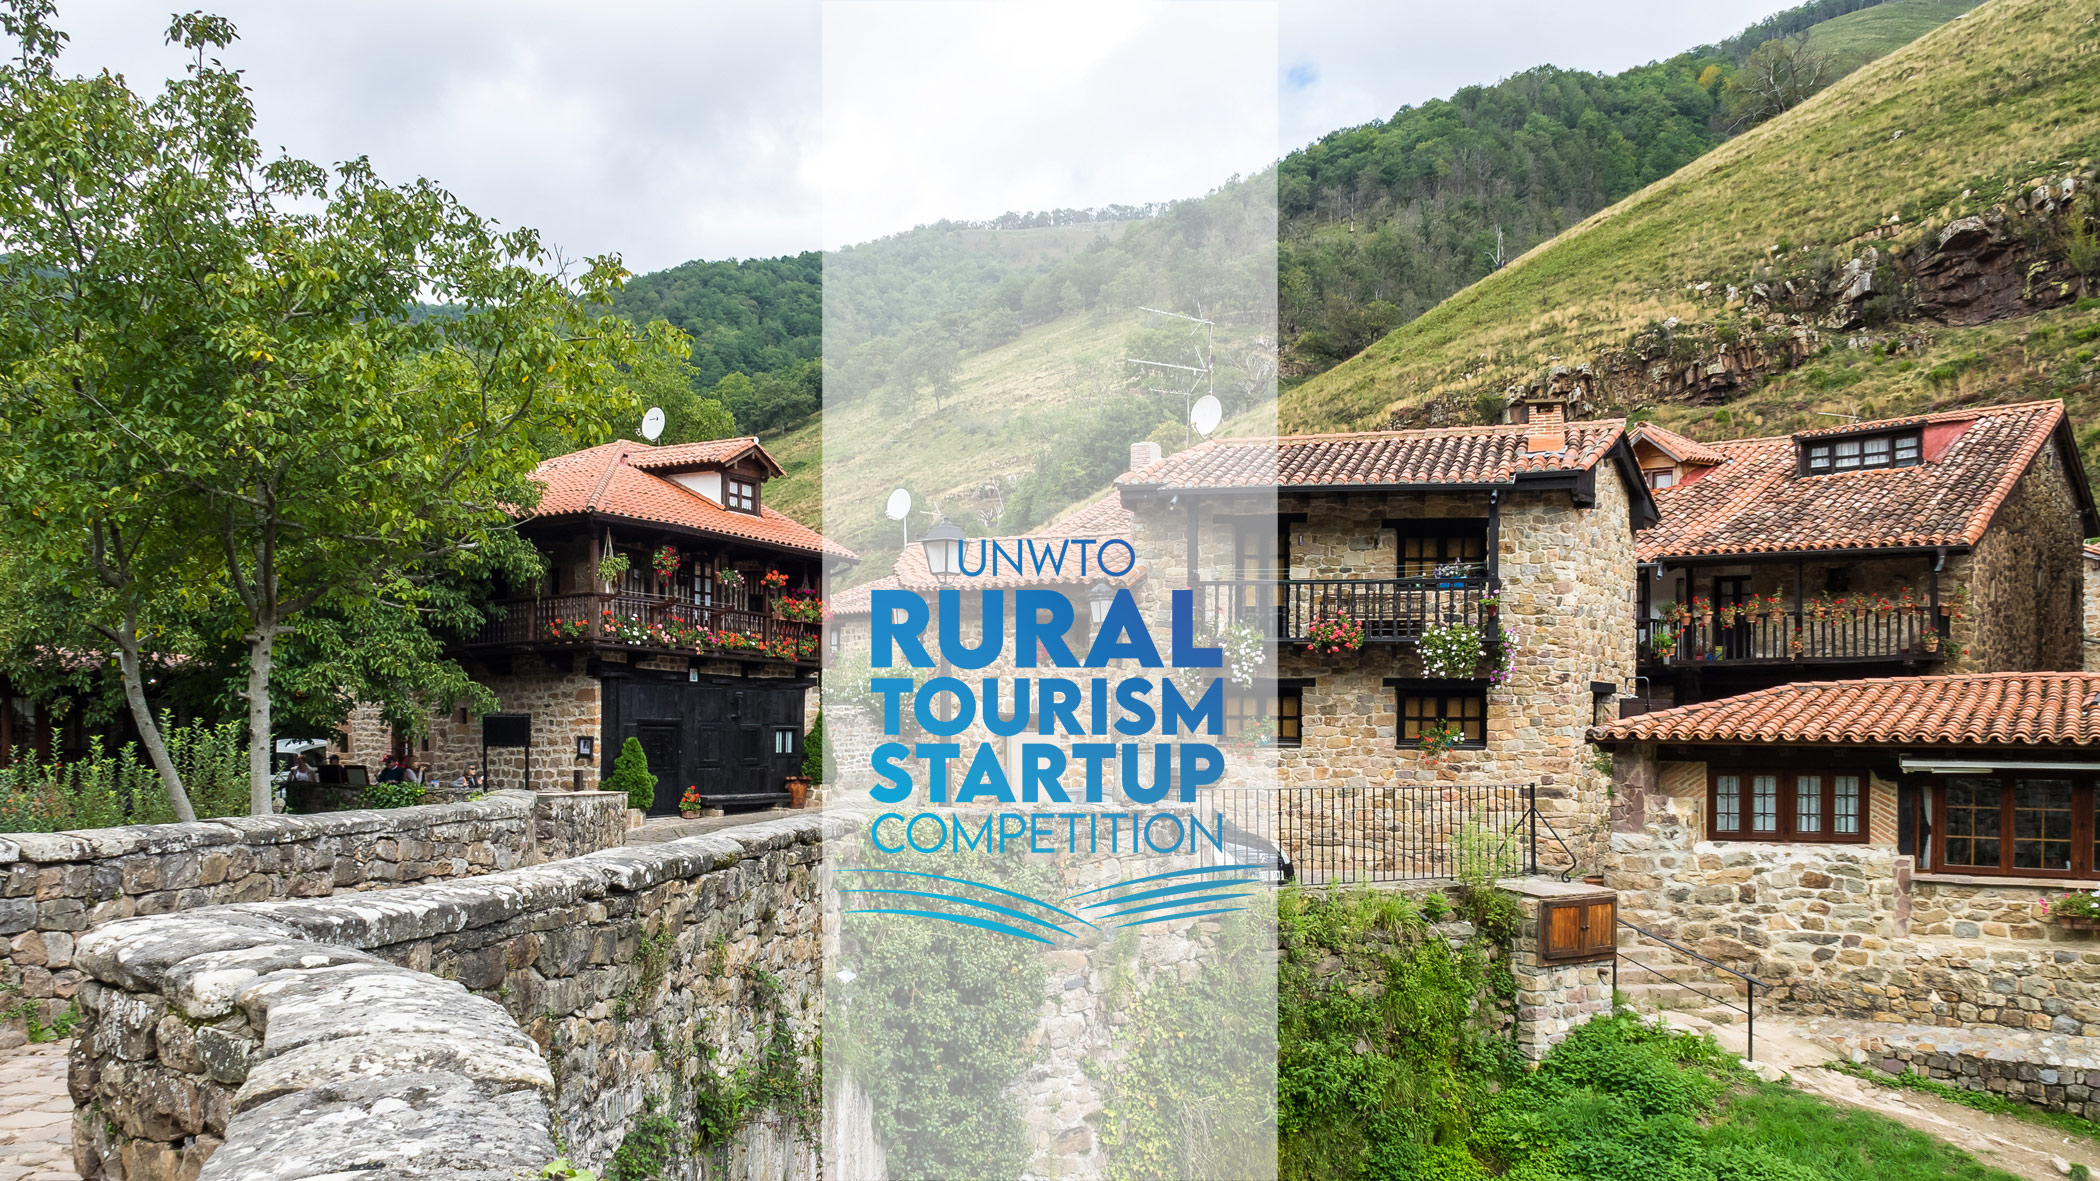 Startup Competition Seeks Ideas to Accelerate Rural Development Through Tourism